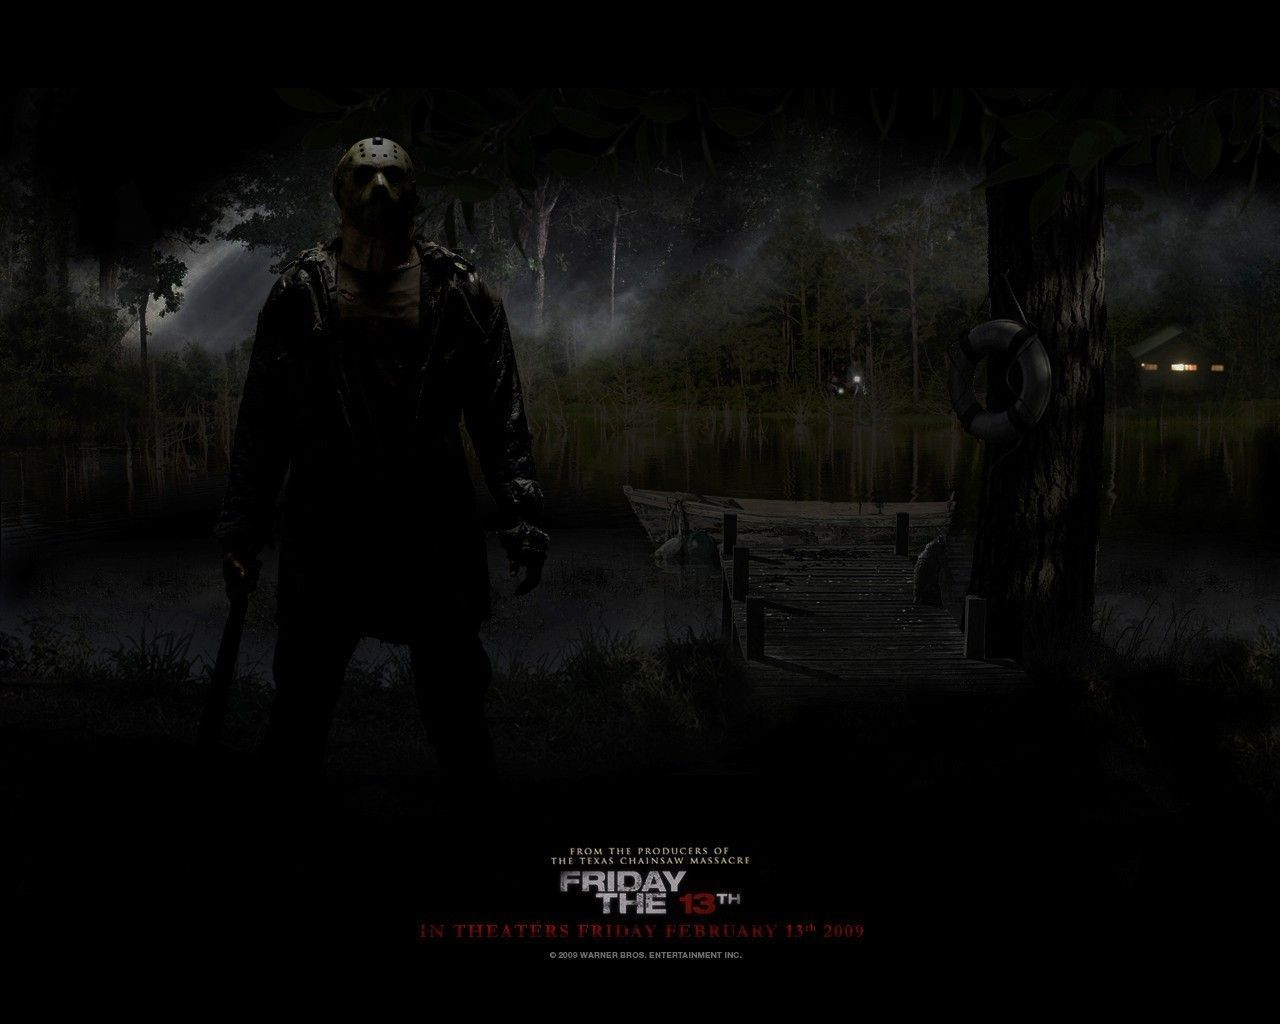 friday the 13th - jason voorhees wallpaper (10872817) - fanpop | no